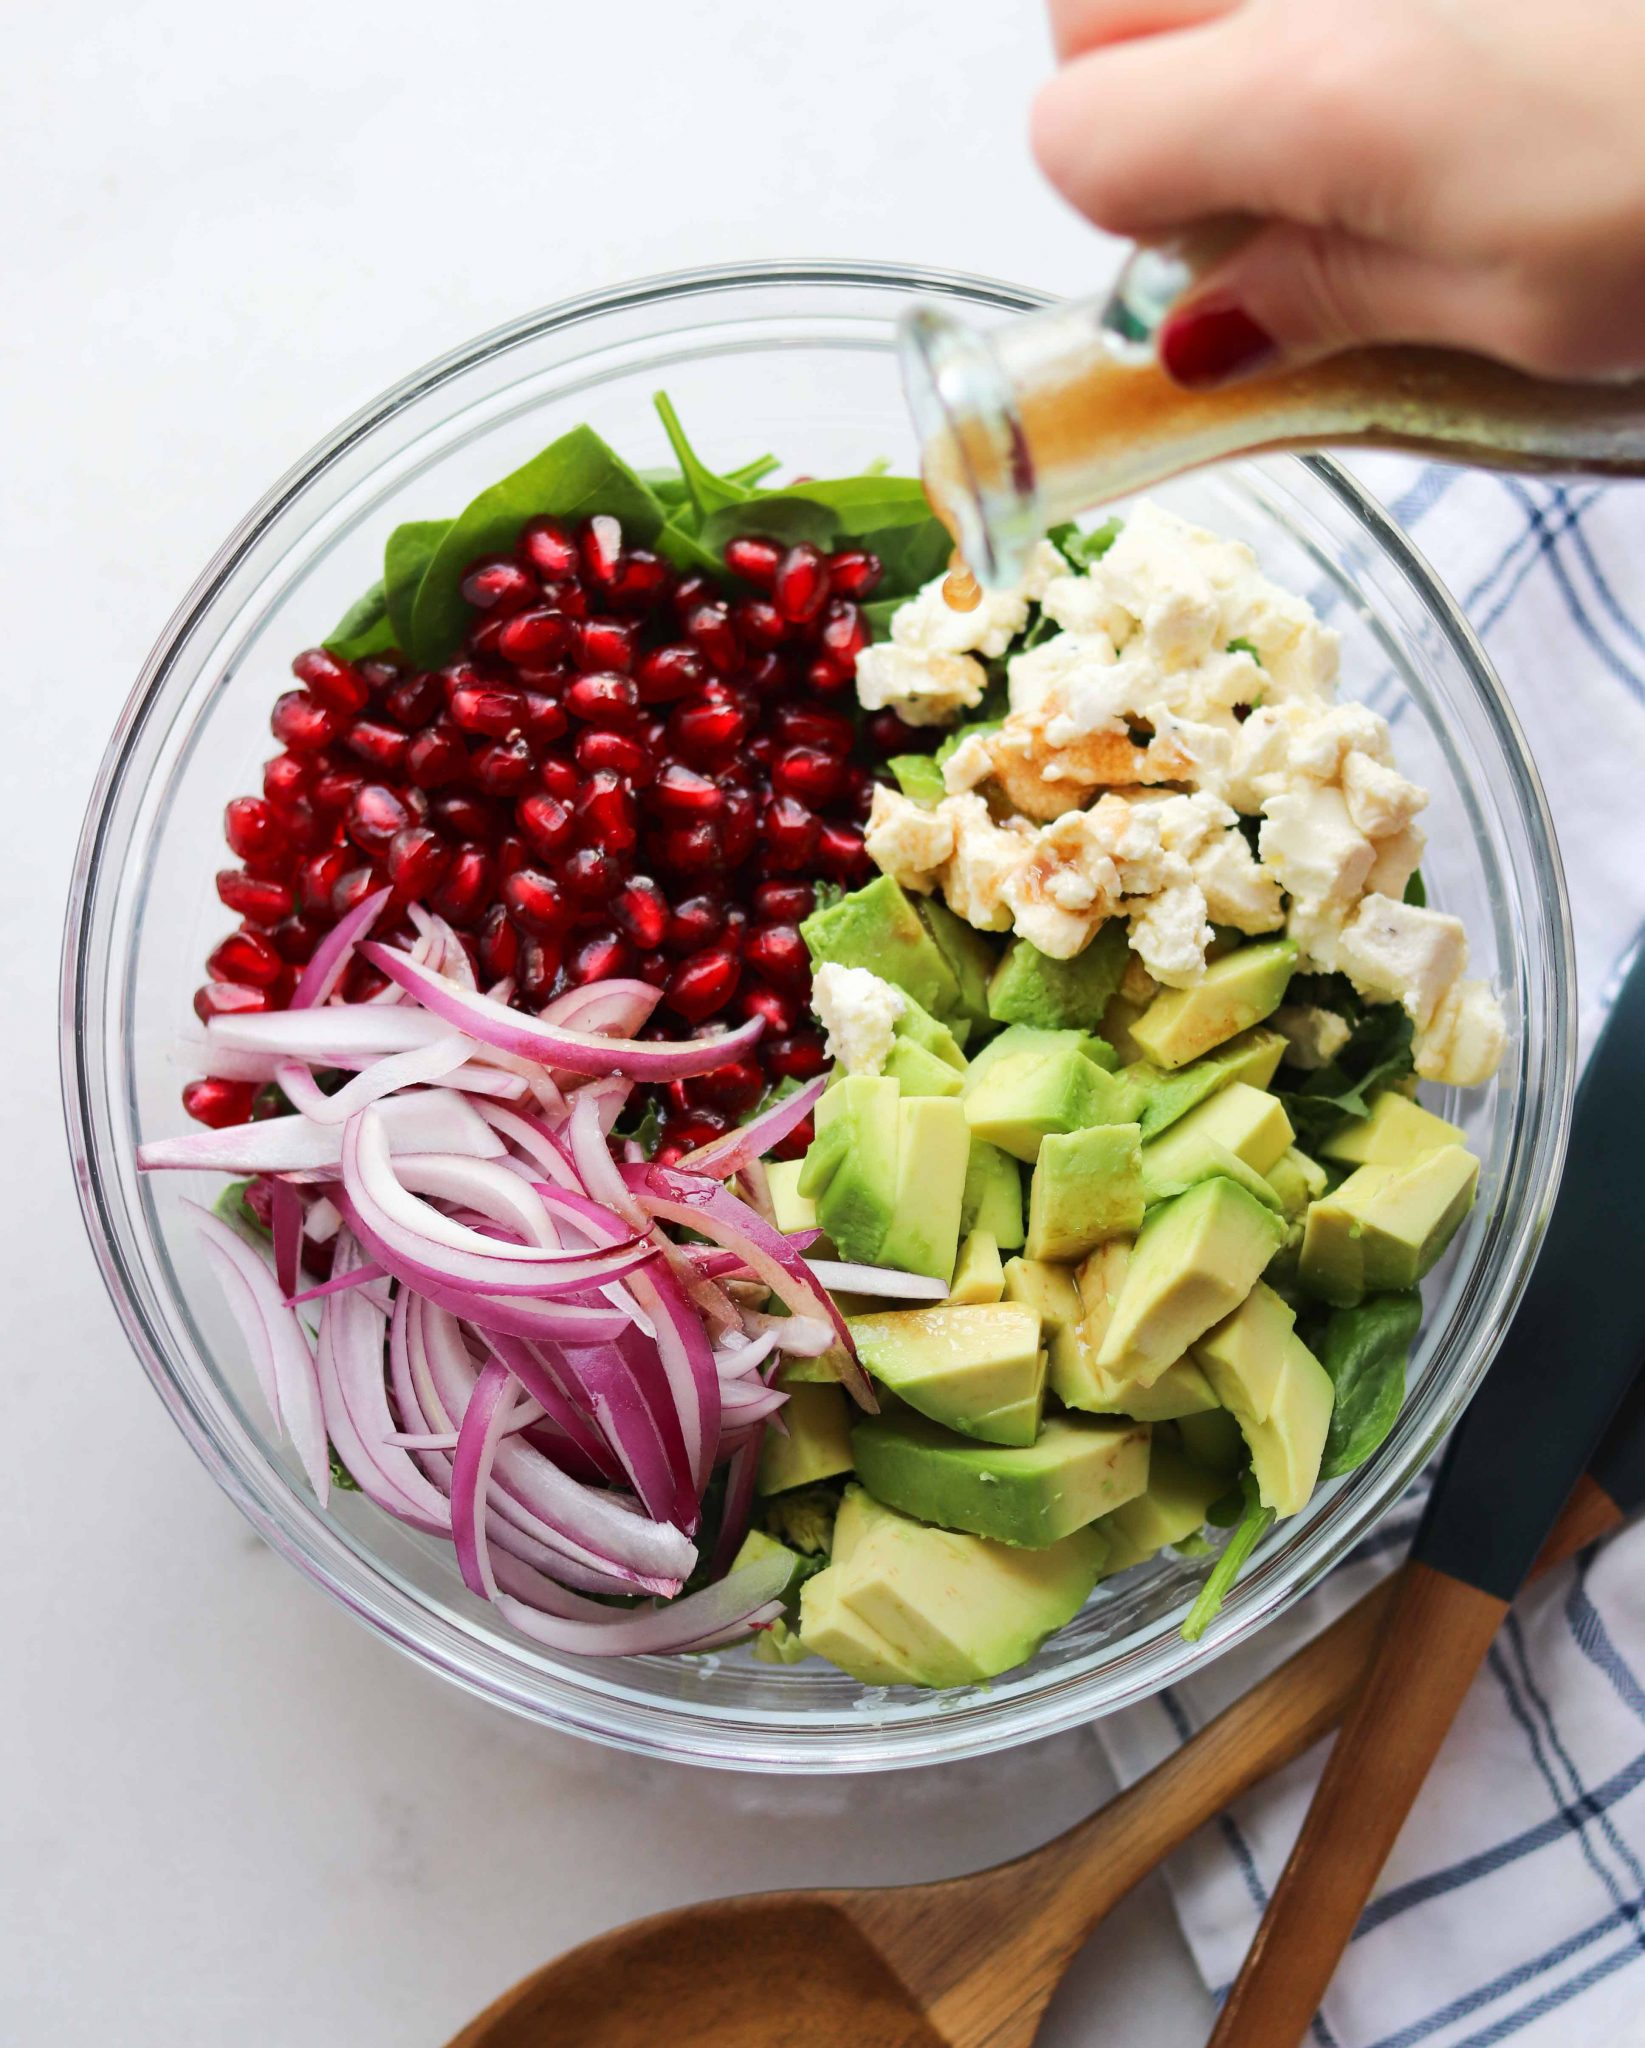 Pomegranate and Avocado Winter Salad in a glass bowl with a hand pouring the balsamic vinaigrette on top